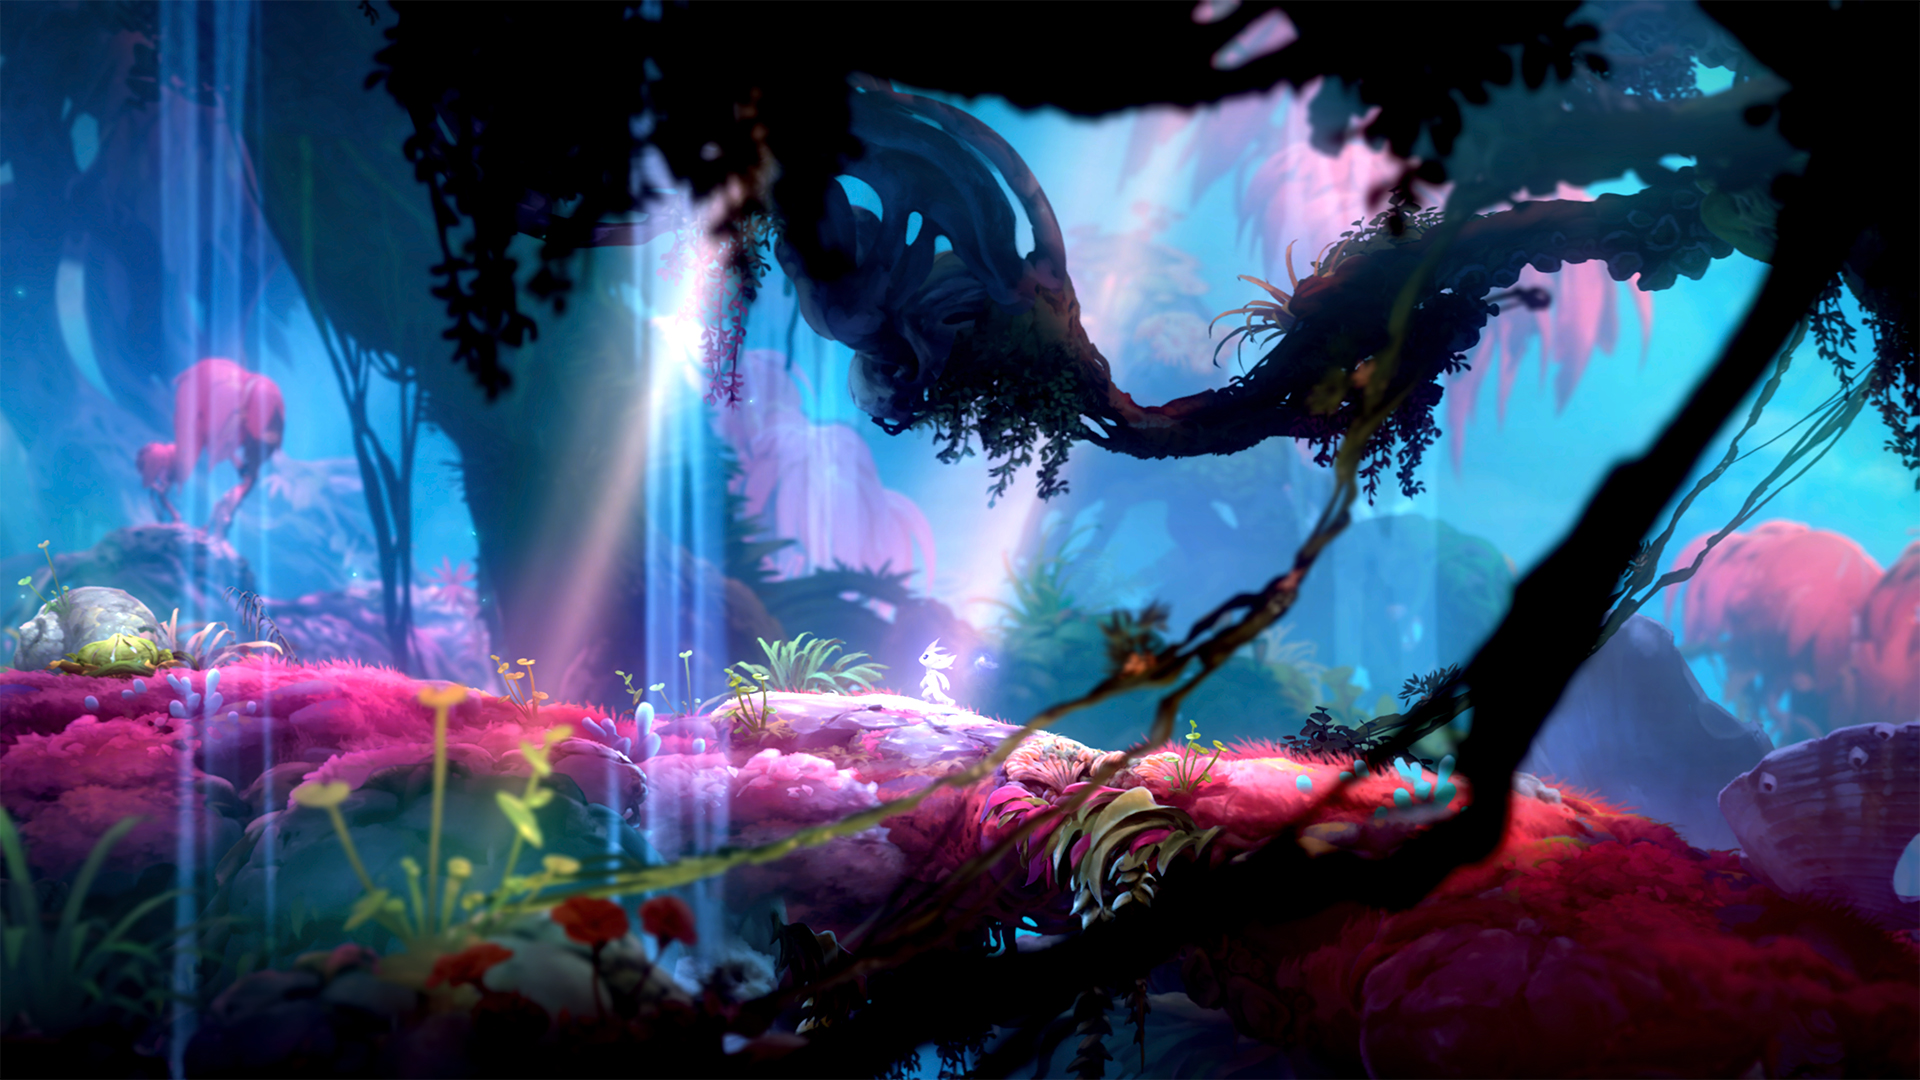 composer Gareth Coker interview music Ori and the Will of the Wisps soundtrack, Ori and the Blind Forest, Moon Studios and Xbox Game Studios